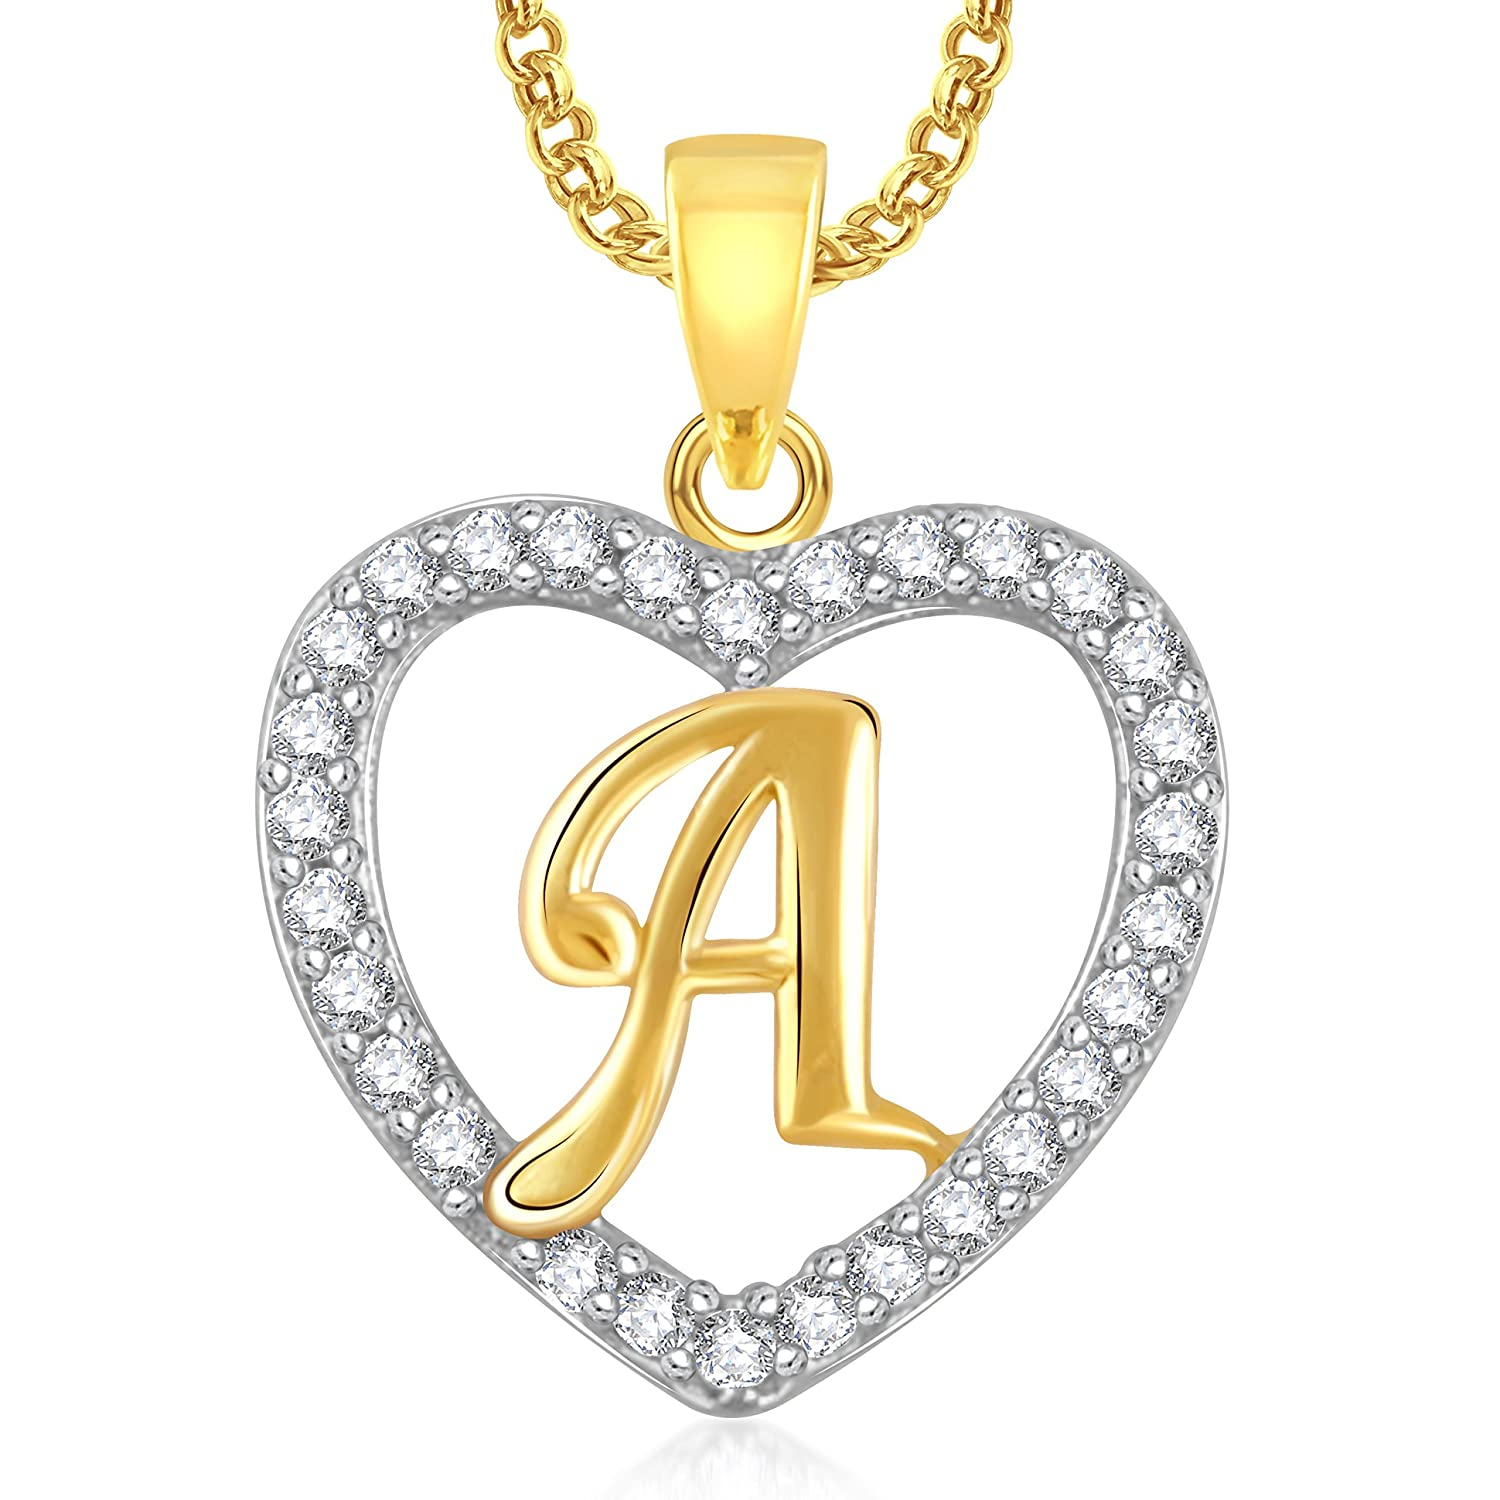 lockets at carat id jewelry chain diamond victorian gold heart j necklaces locket org for sale topview and antique pendant